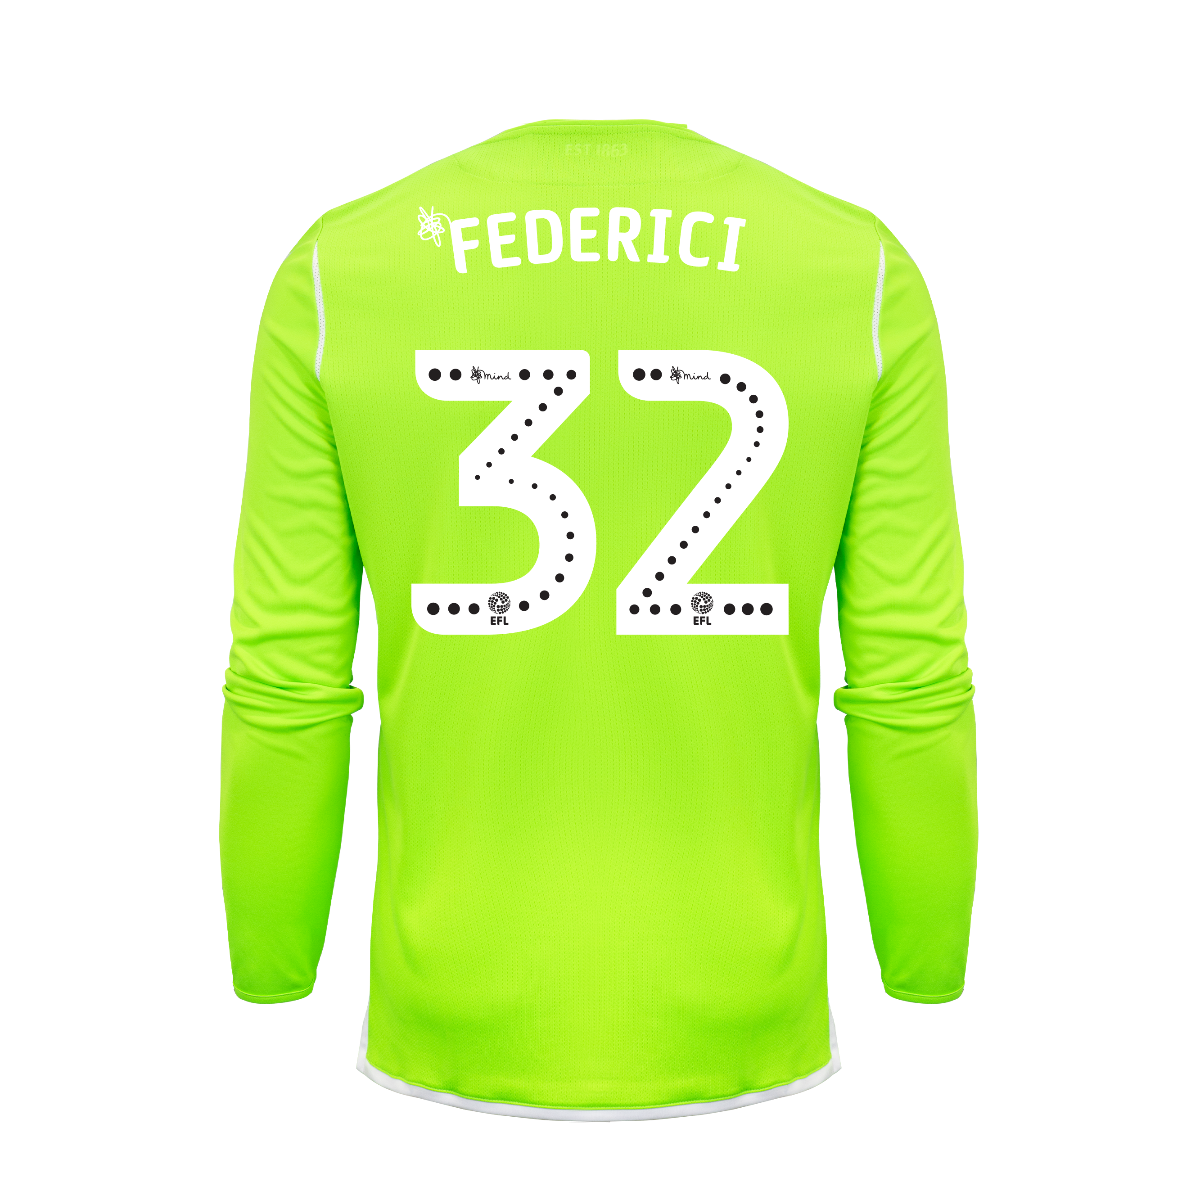 2019/20 Adult Home GK Shirt - Federici